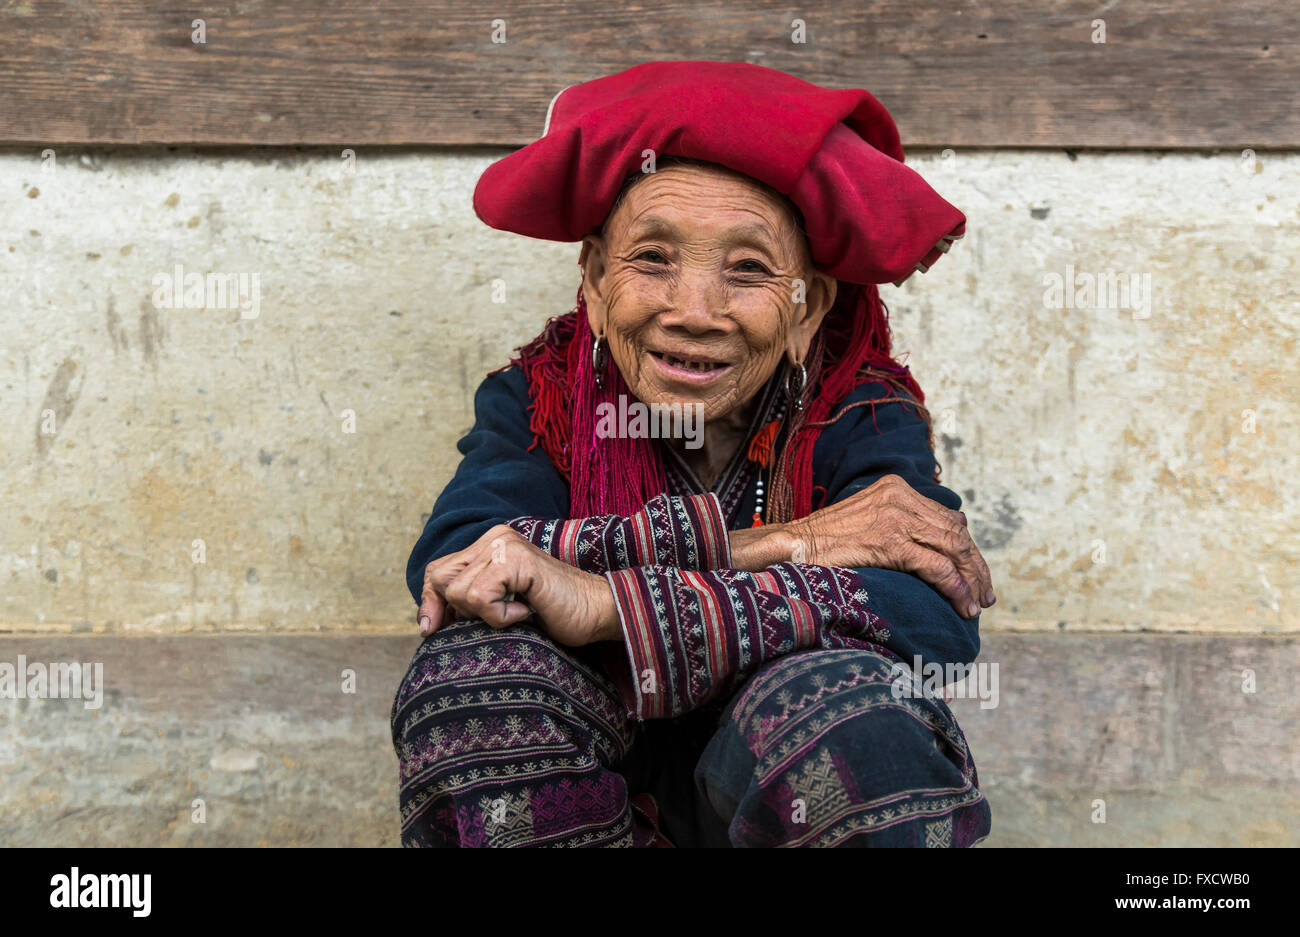 SaPa, Vietnam - March 2016 - Vietnamese old lady from the Black Hmong tribe. - Stock Image